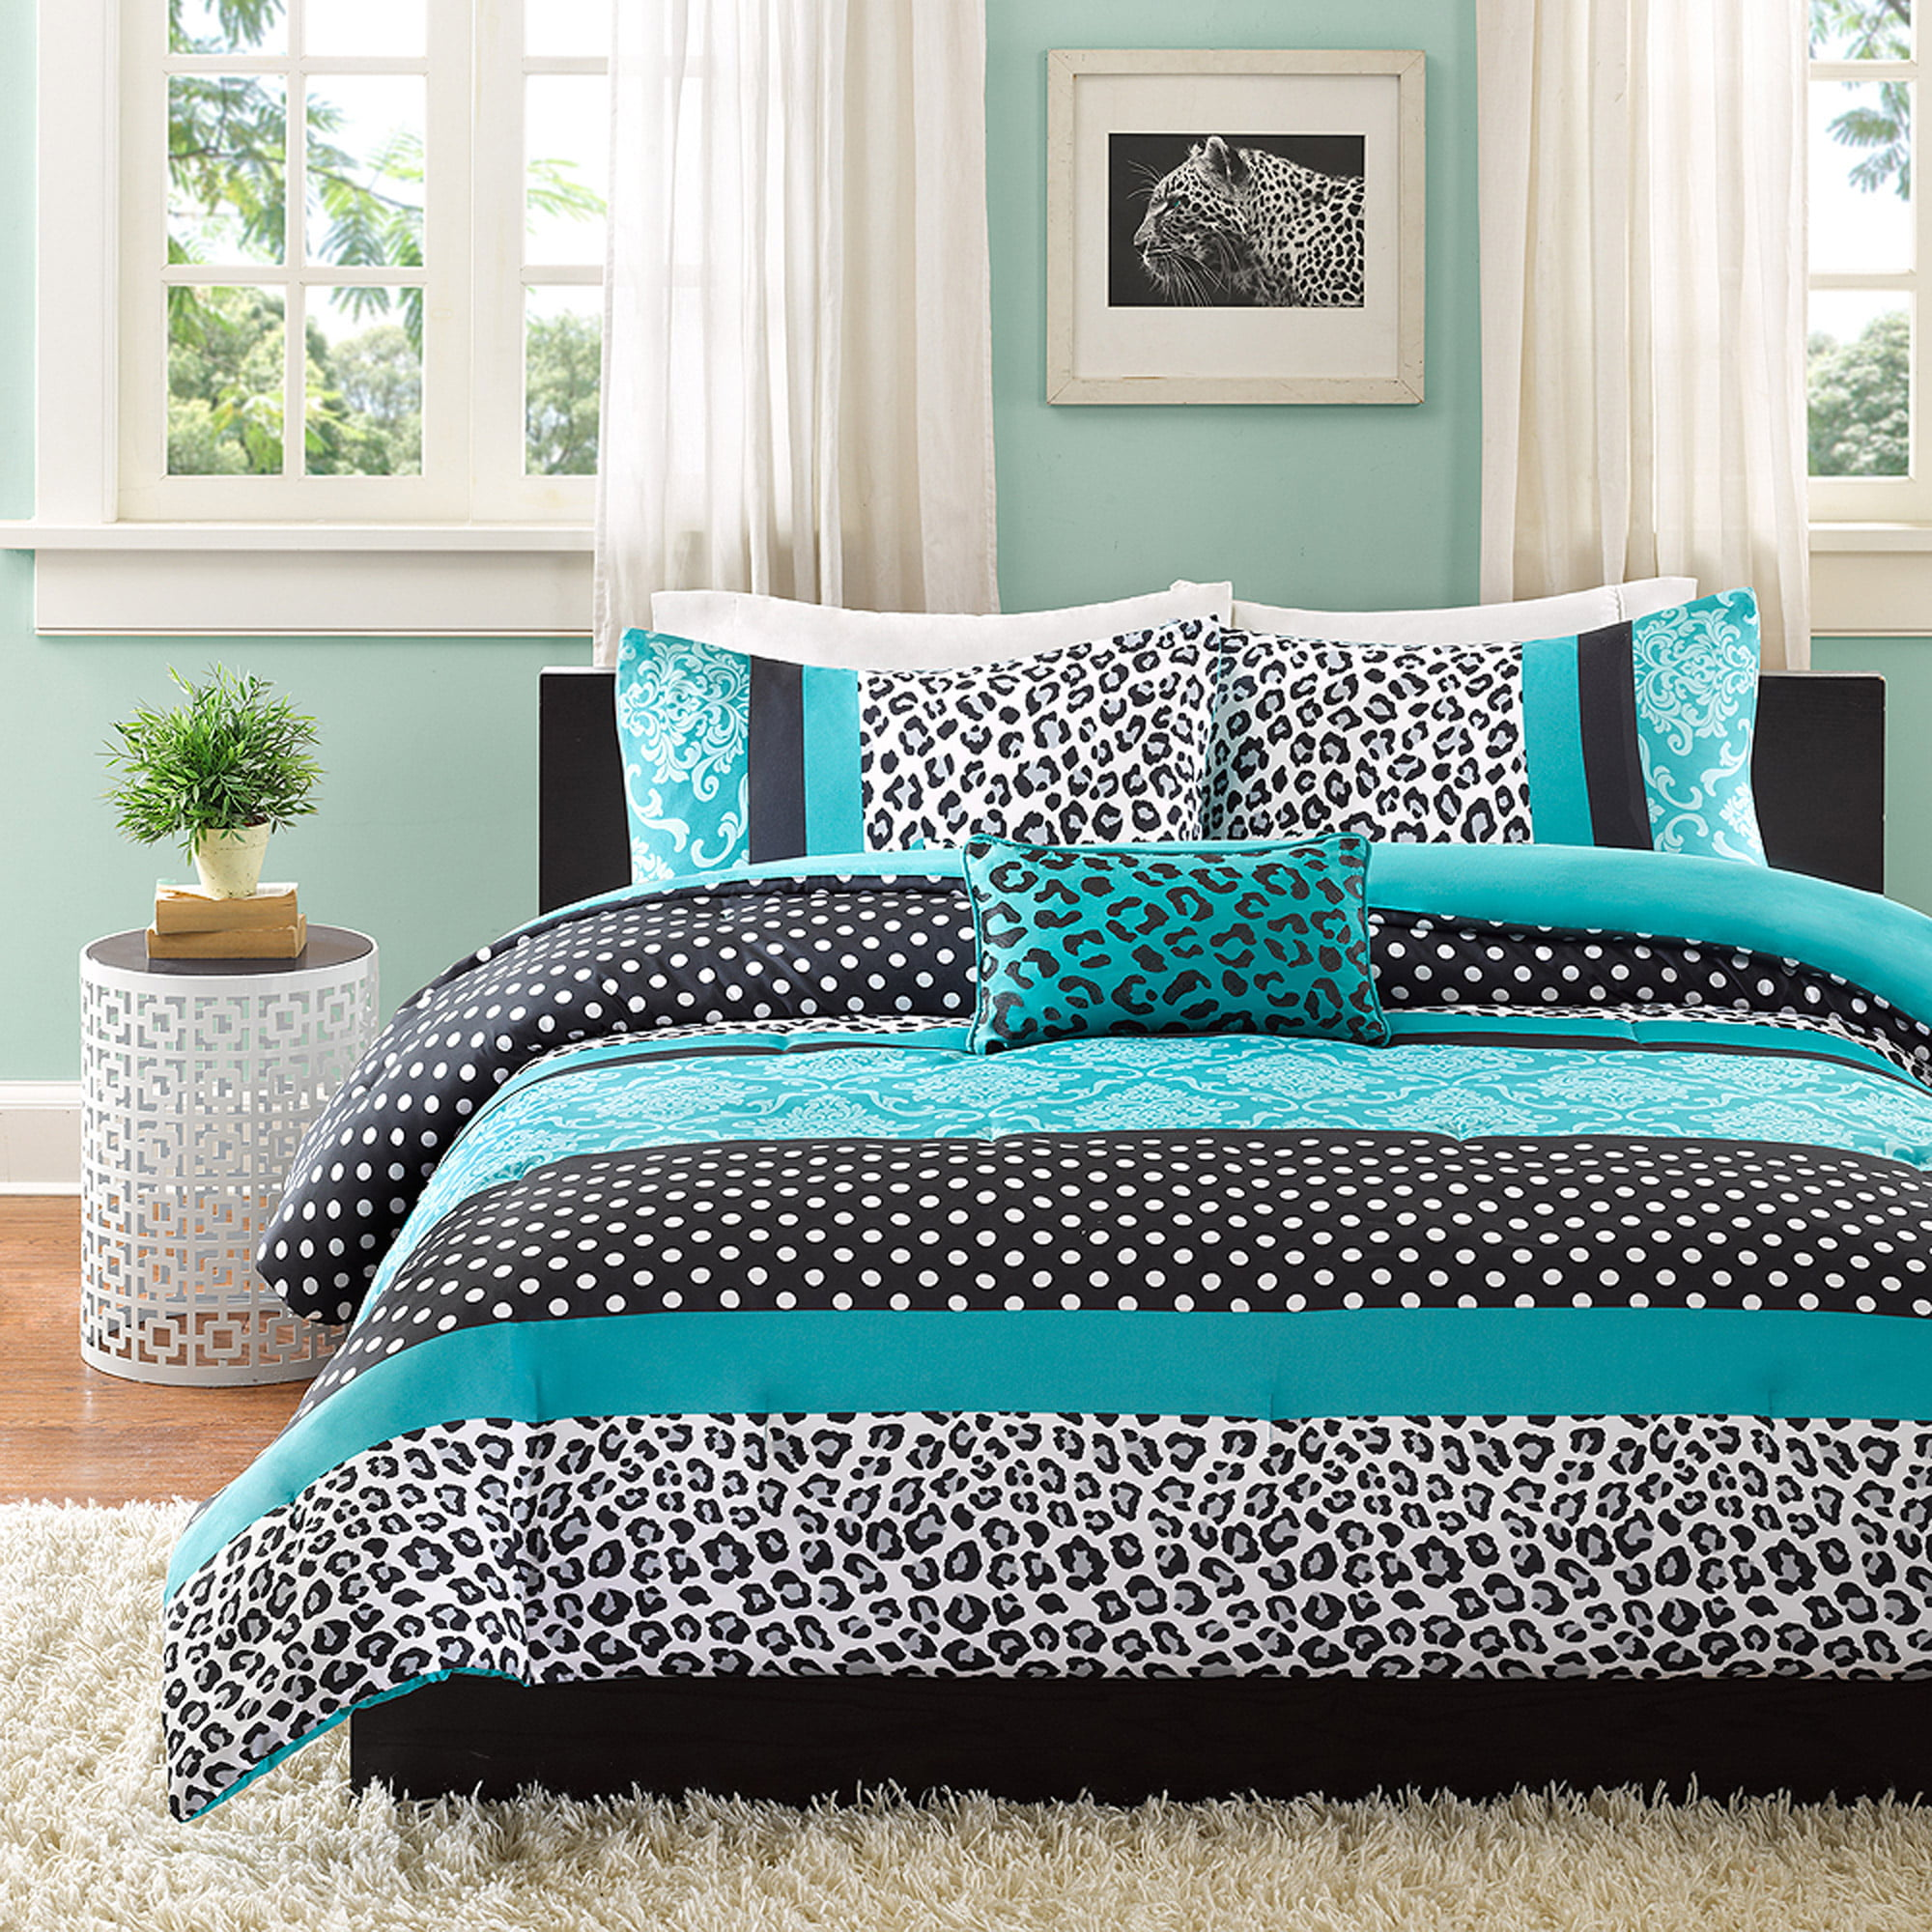 Bed sheets for teenagers - Bed Sheets For Teenagers 43